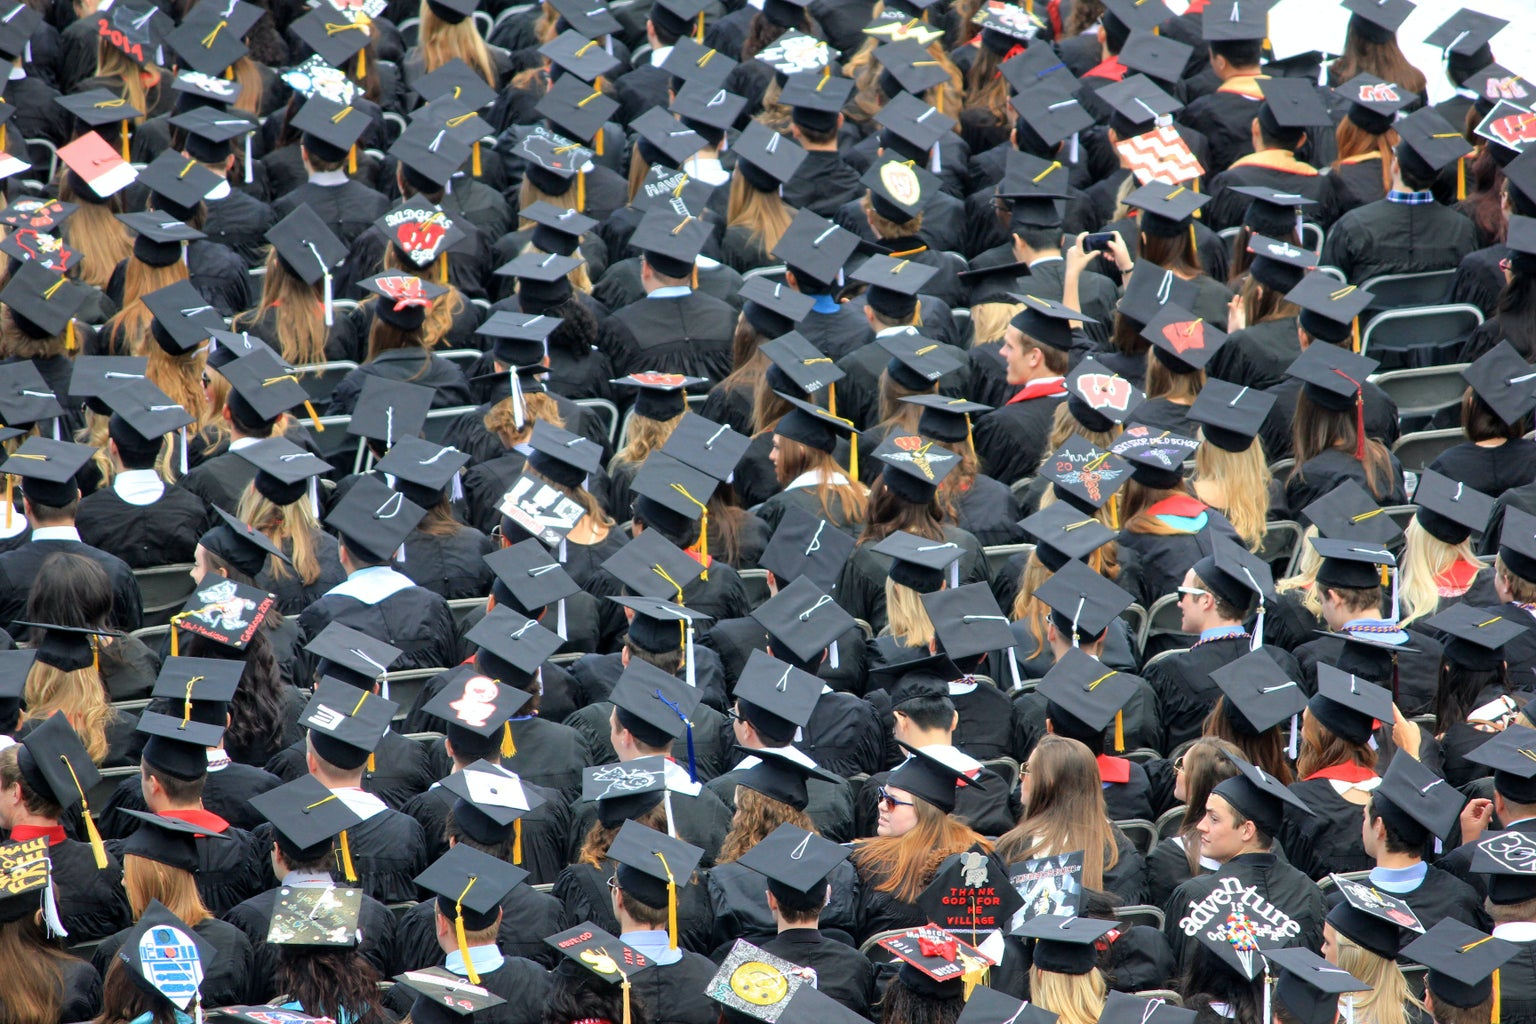 a crowd of people sitting at a graduation all wearing graduation caps